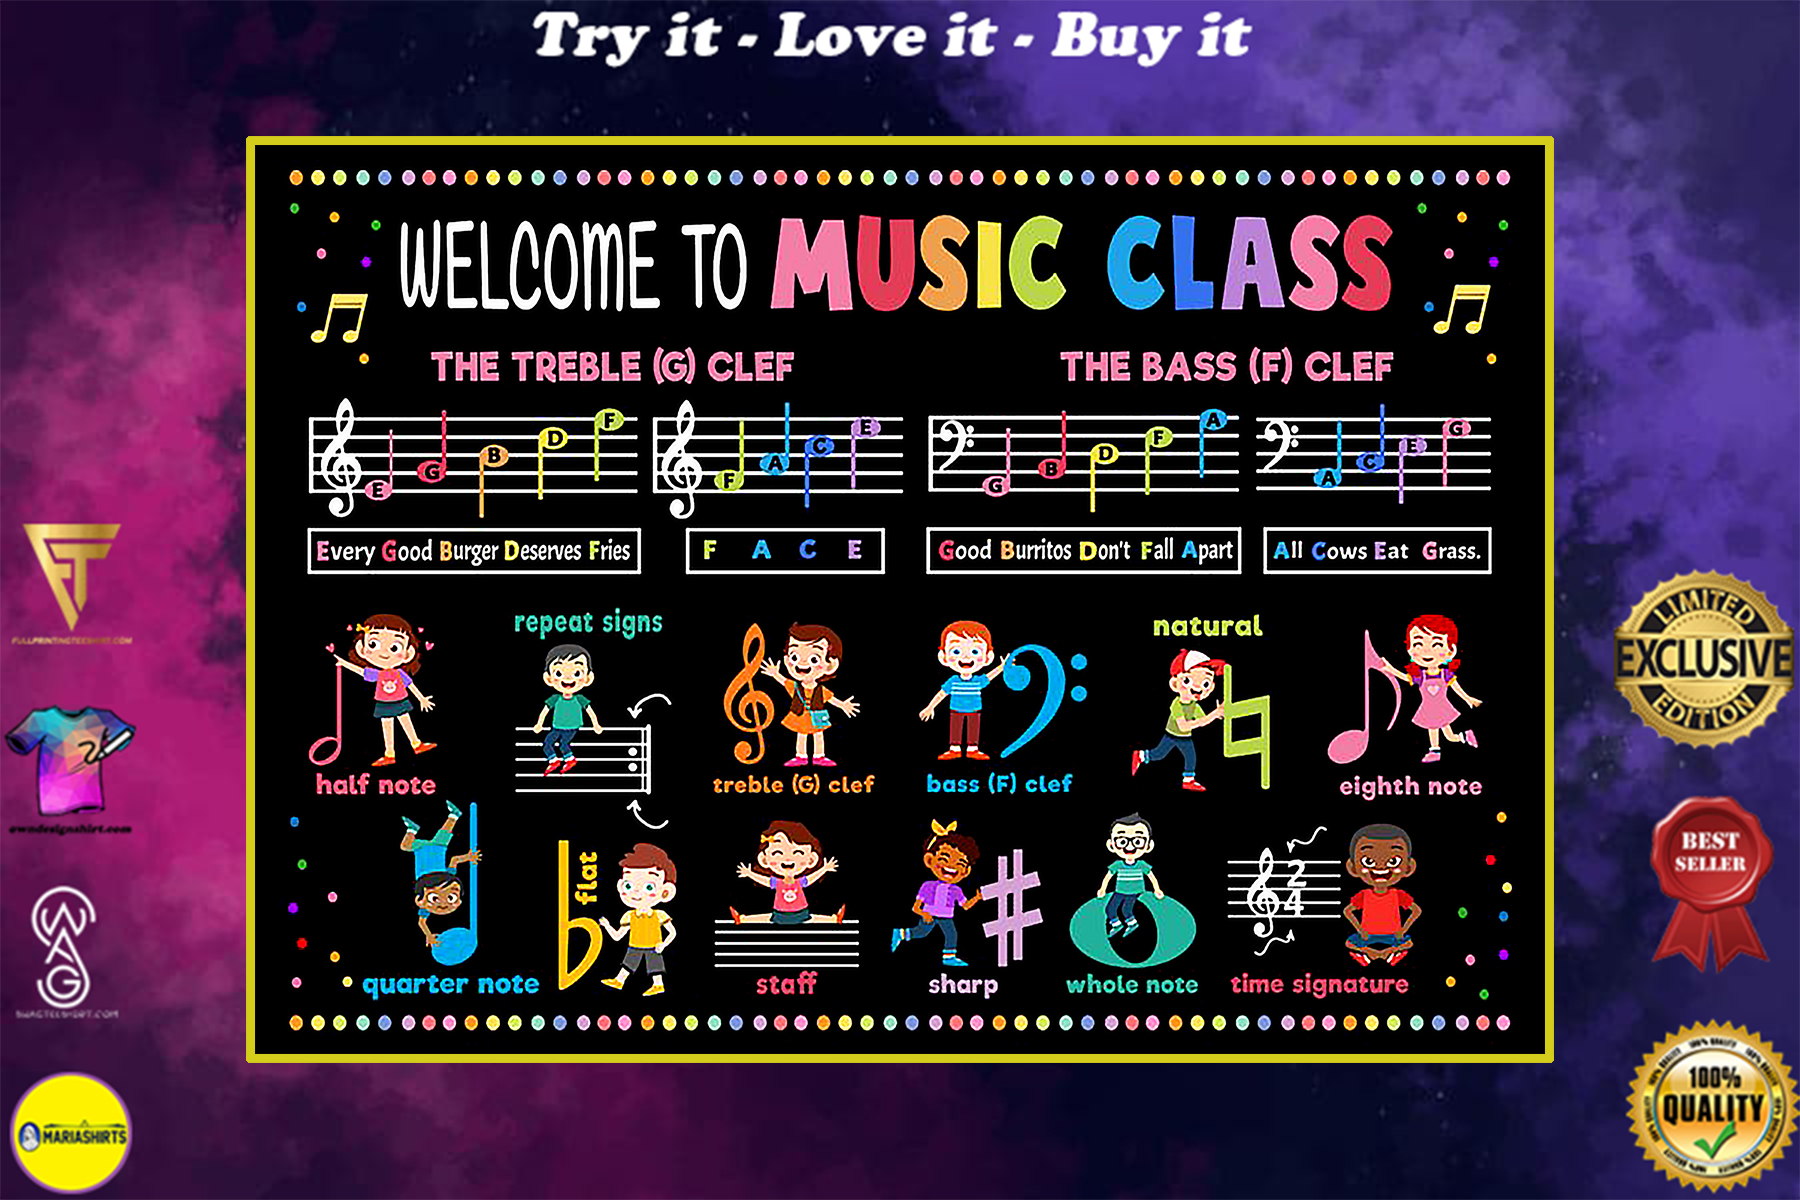 back to school welcome to music class poster